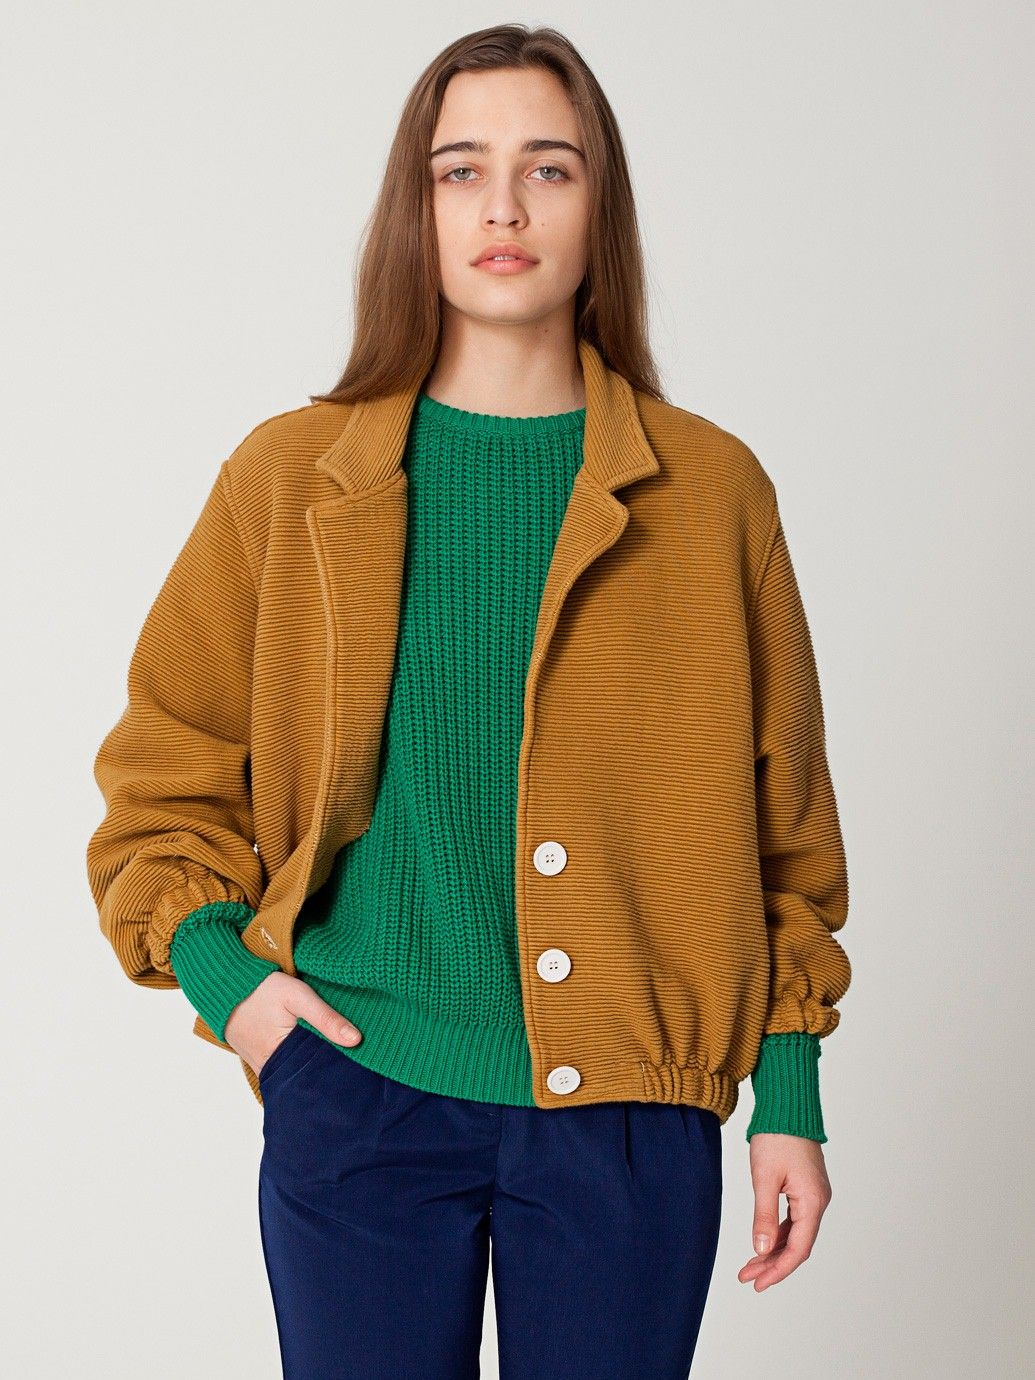 Cotton Ottoman Rib Jacket | Women's Jackets, Coats & Blazers ...